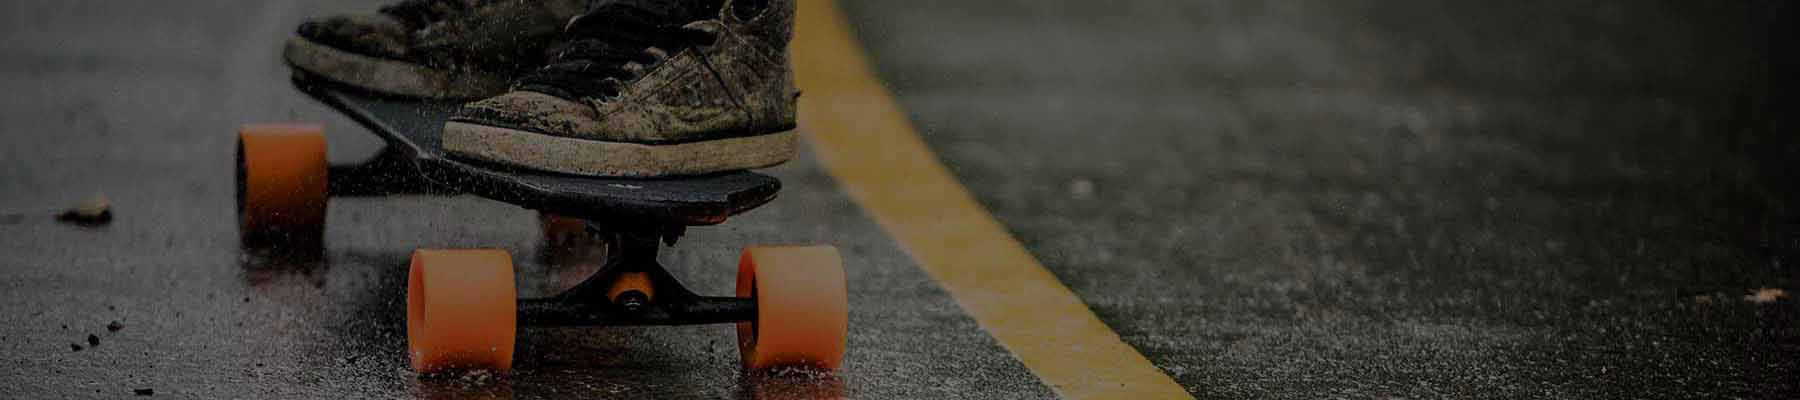 Best Electric Skateboard 2019